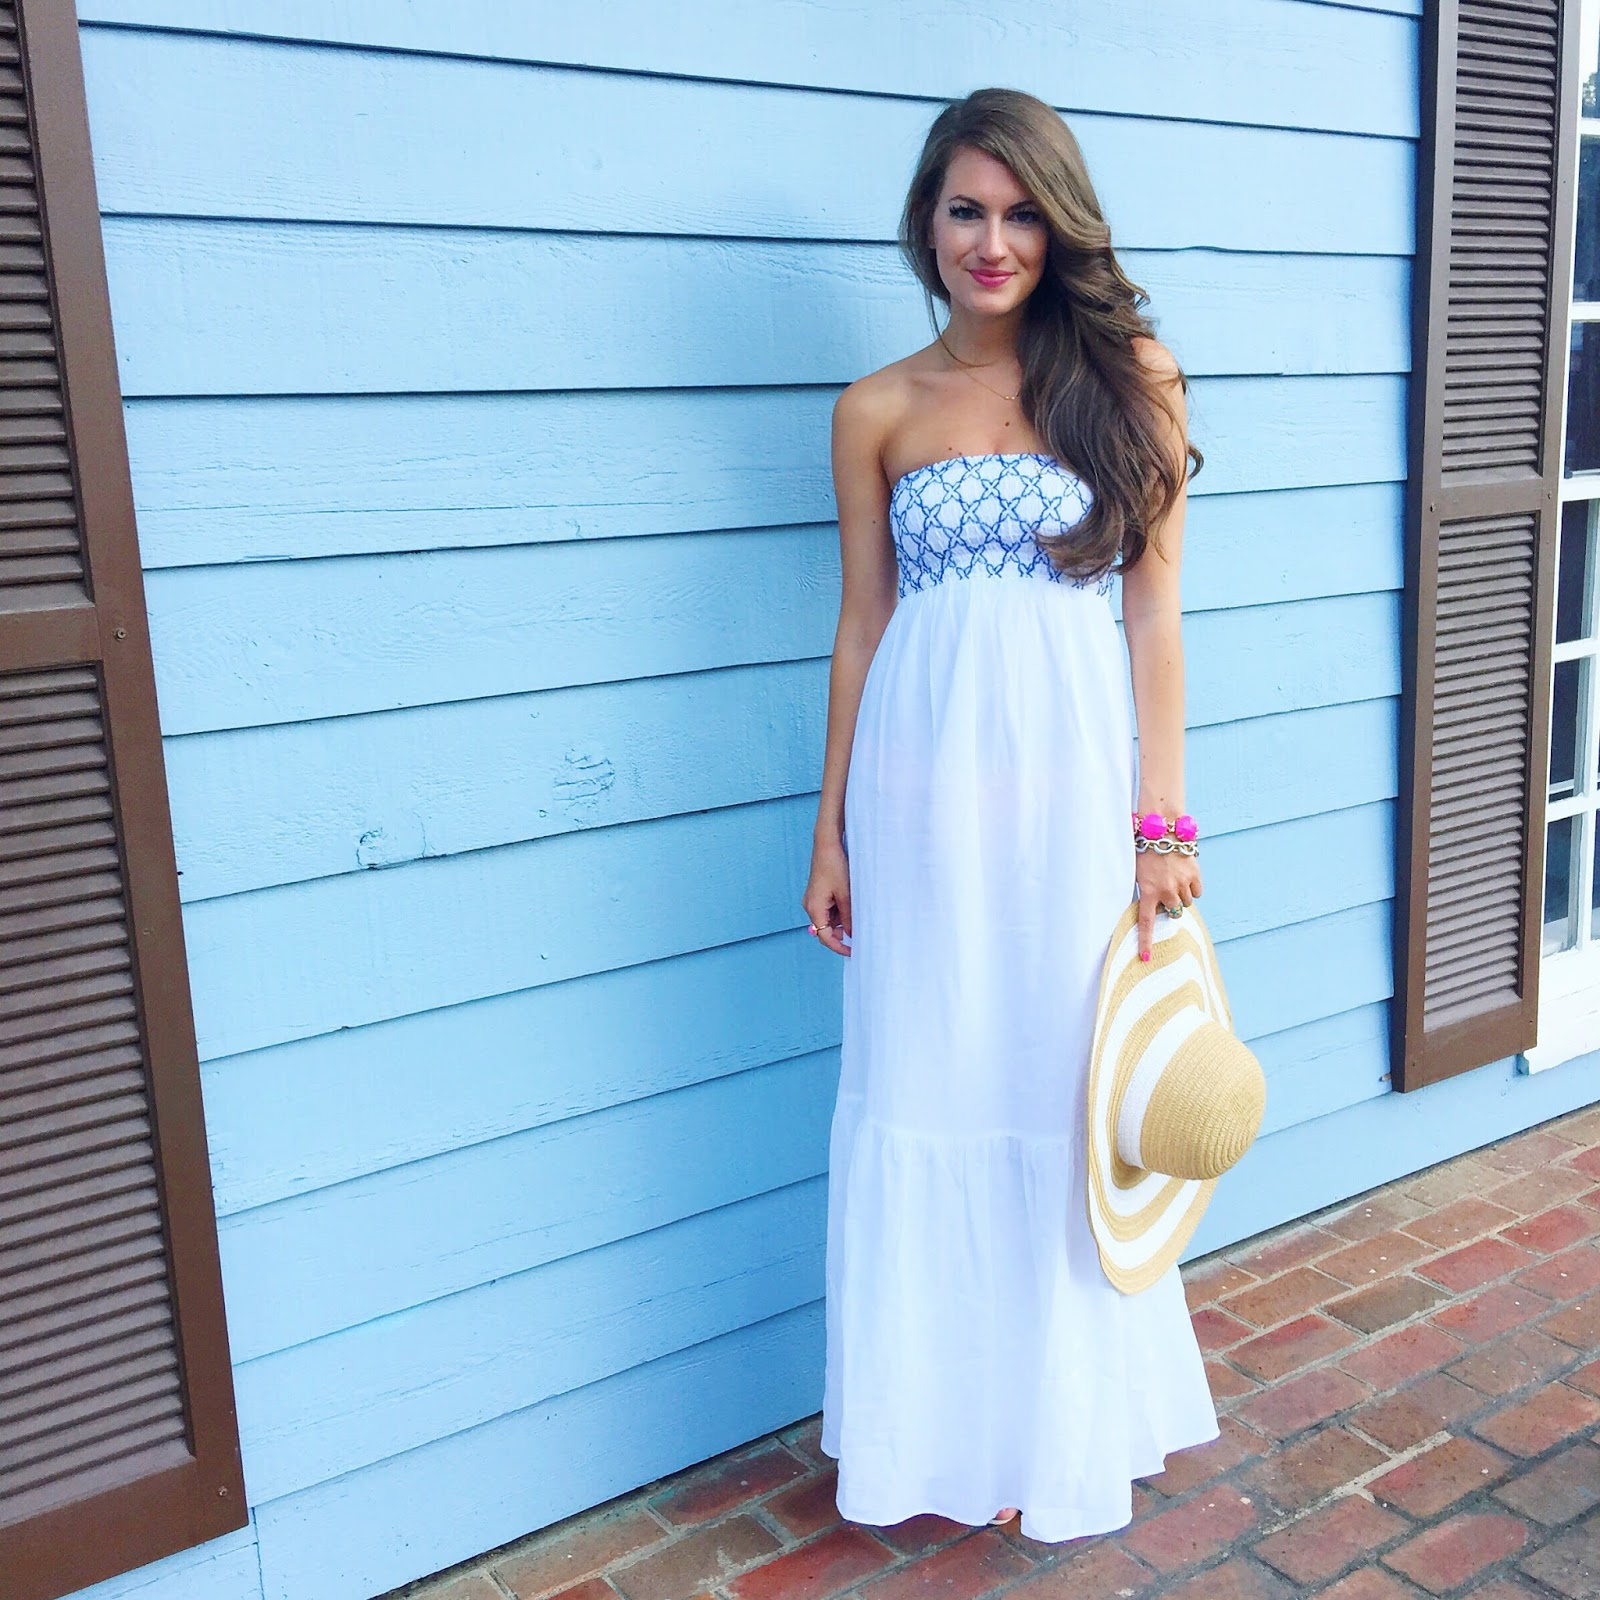 Southern Curls & Pearls: Recent Instagrams…